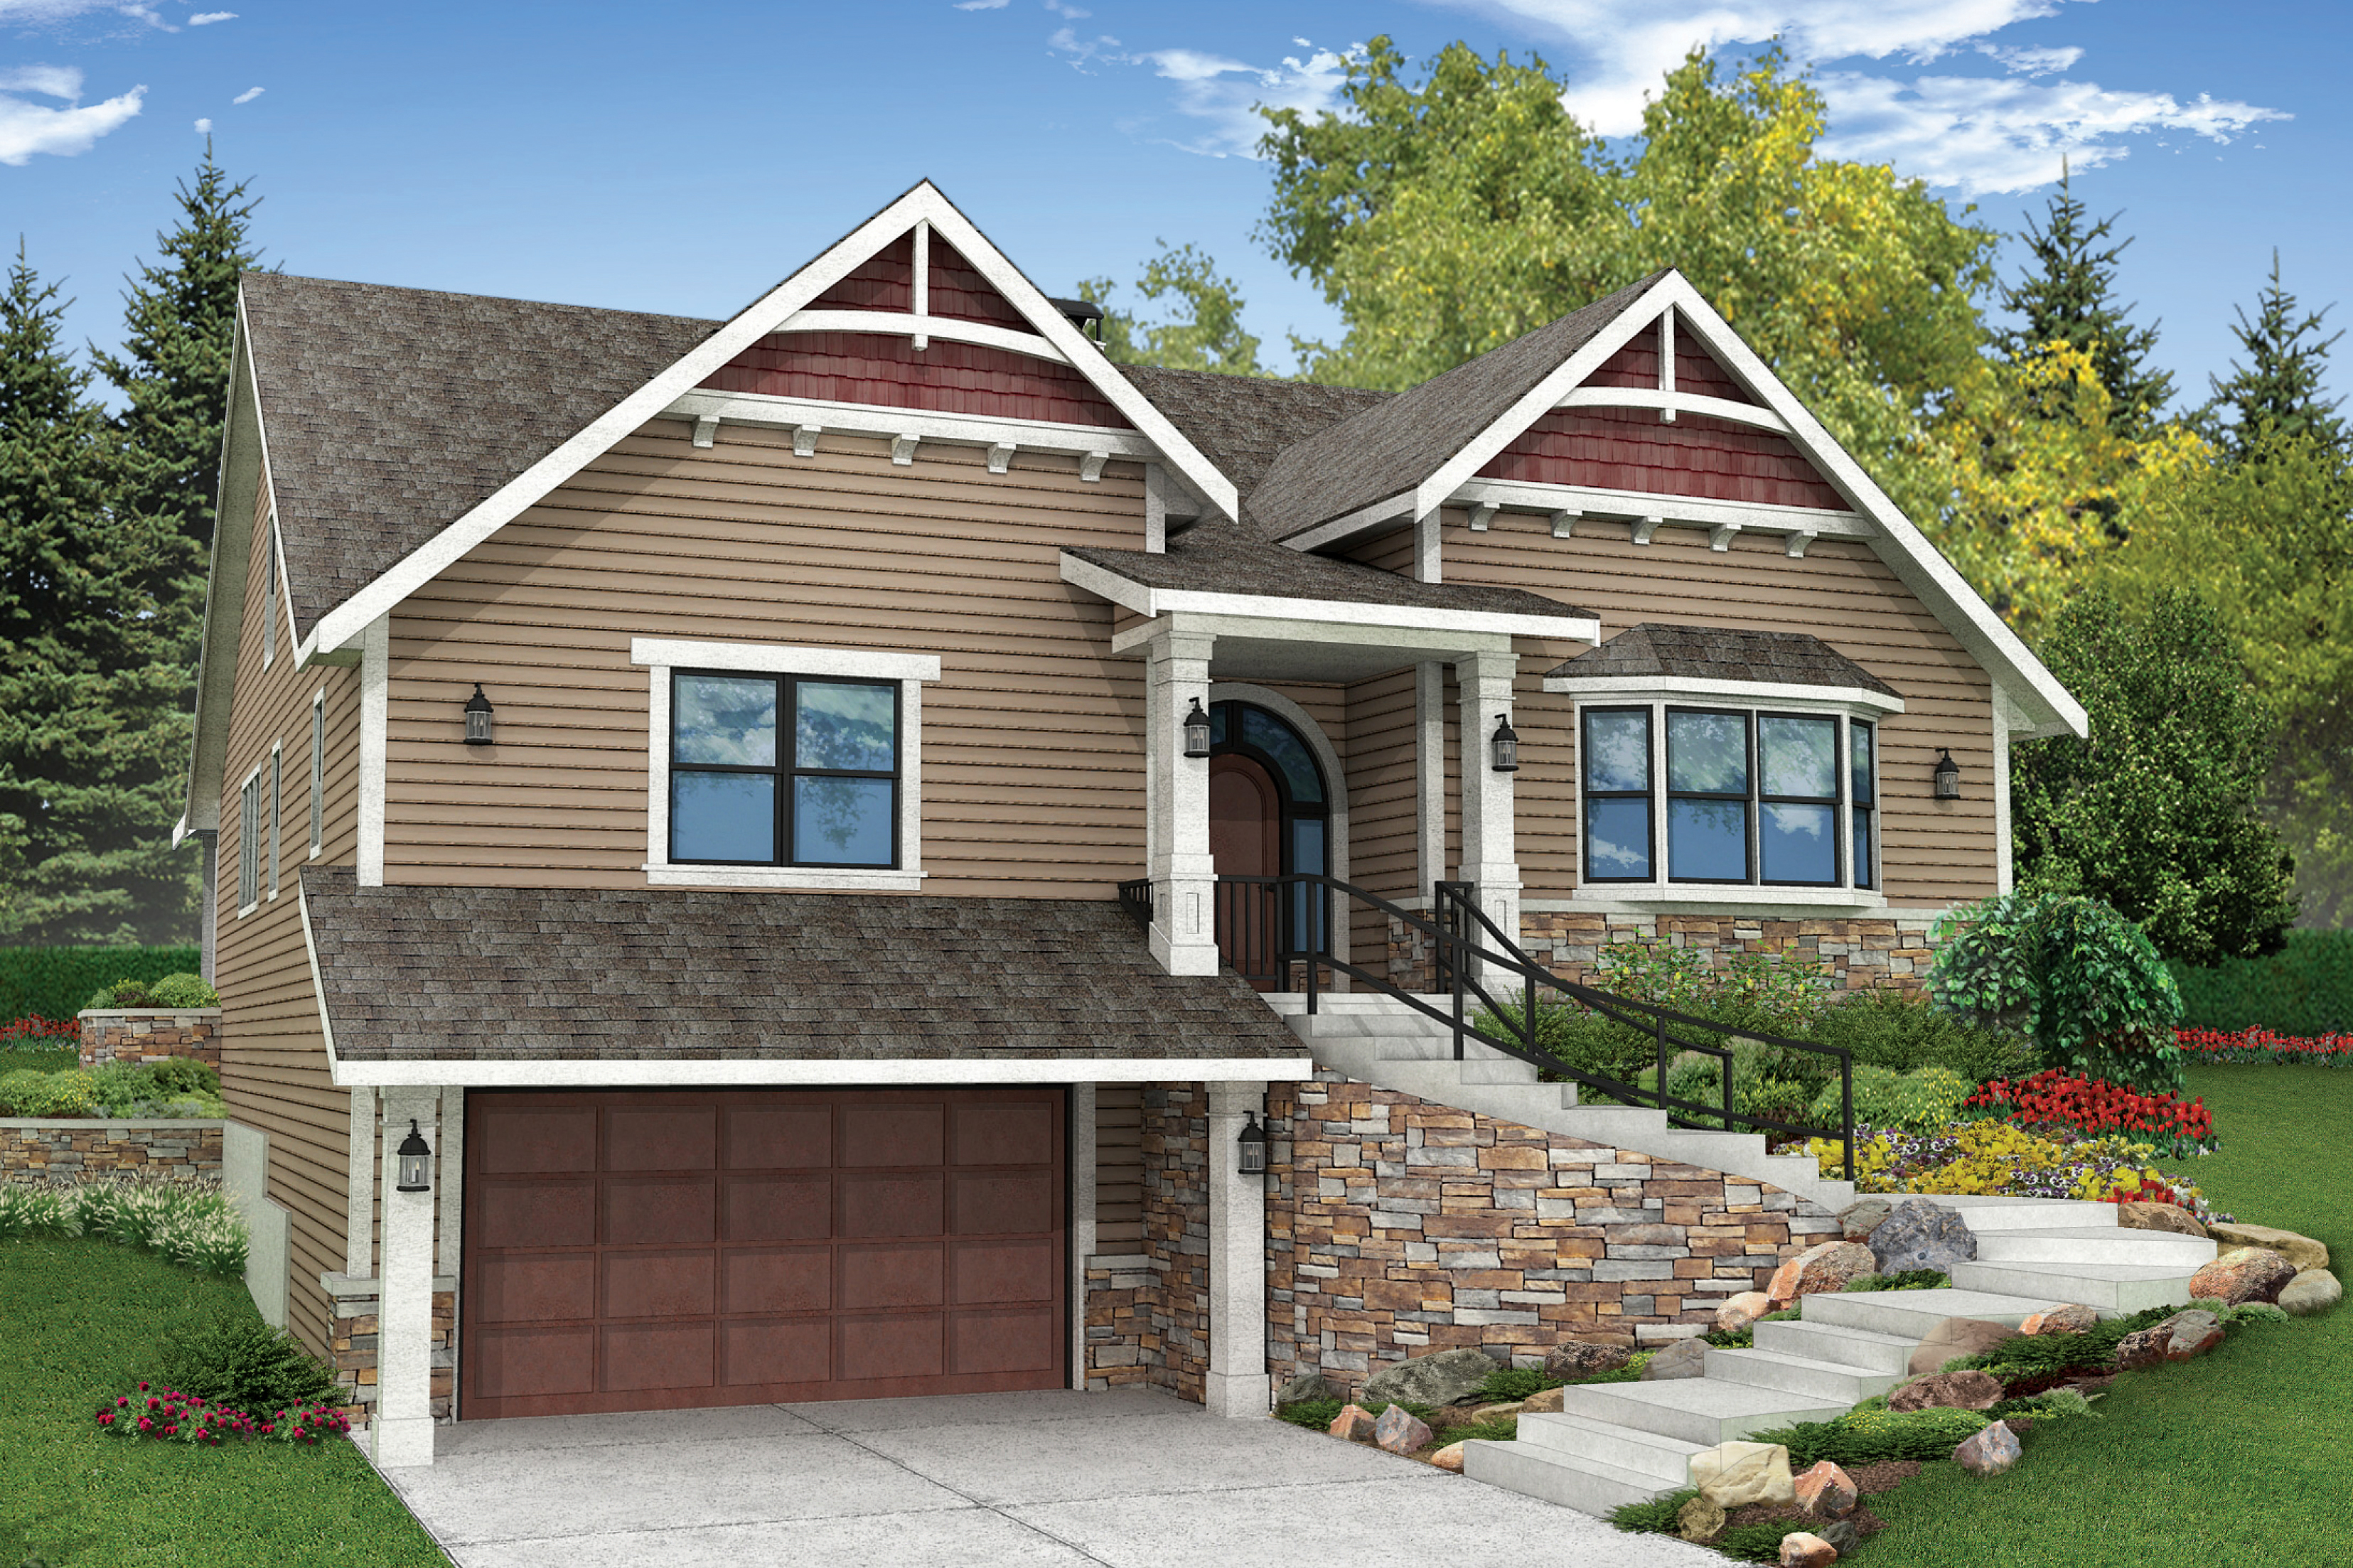 Craftsman house plans springvale 30 950 associated designs for Craftsman house plans with side entry garage